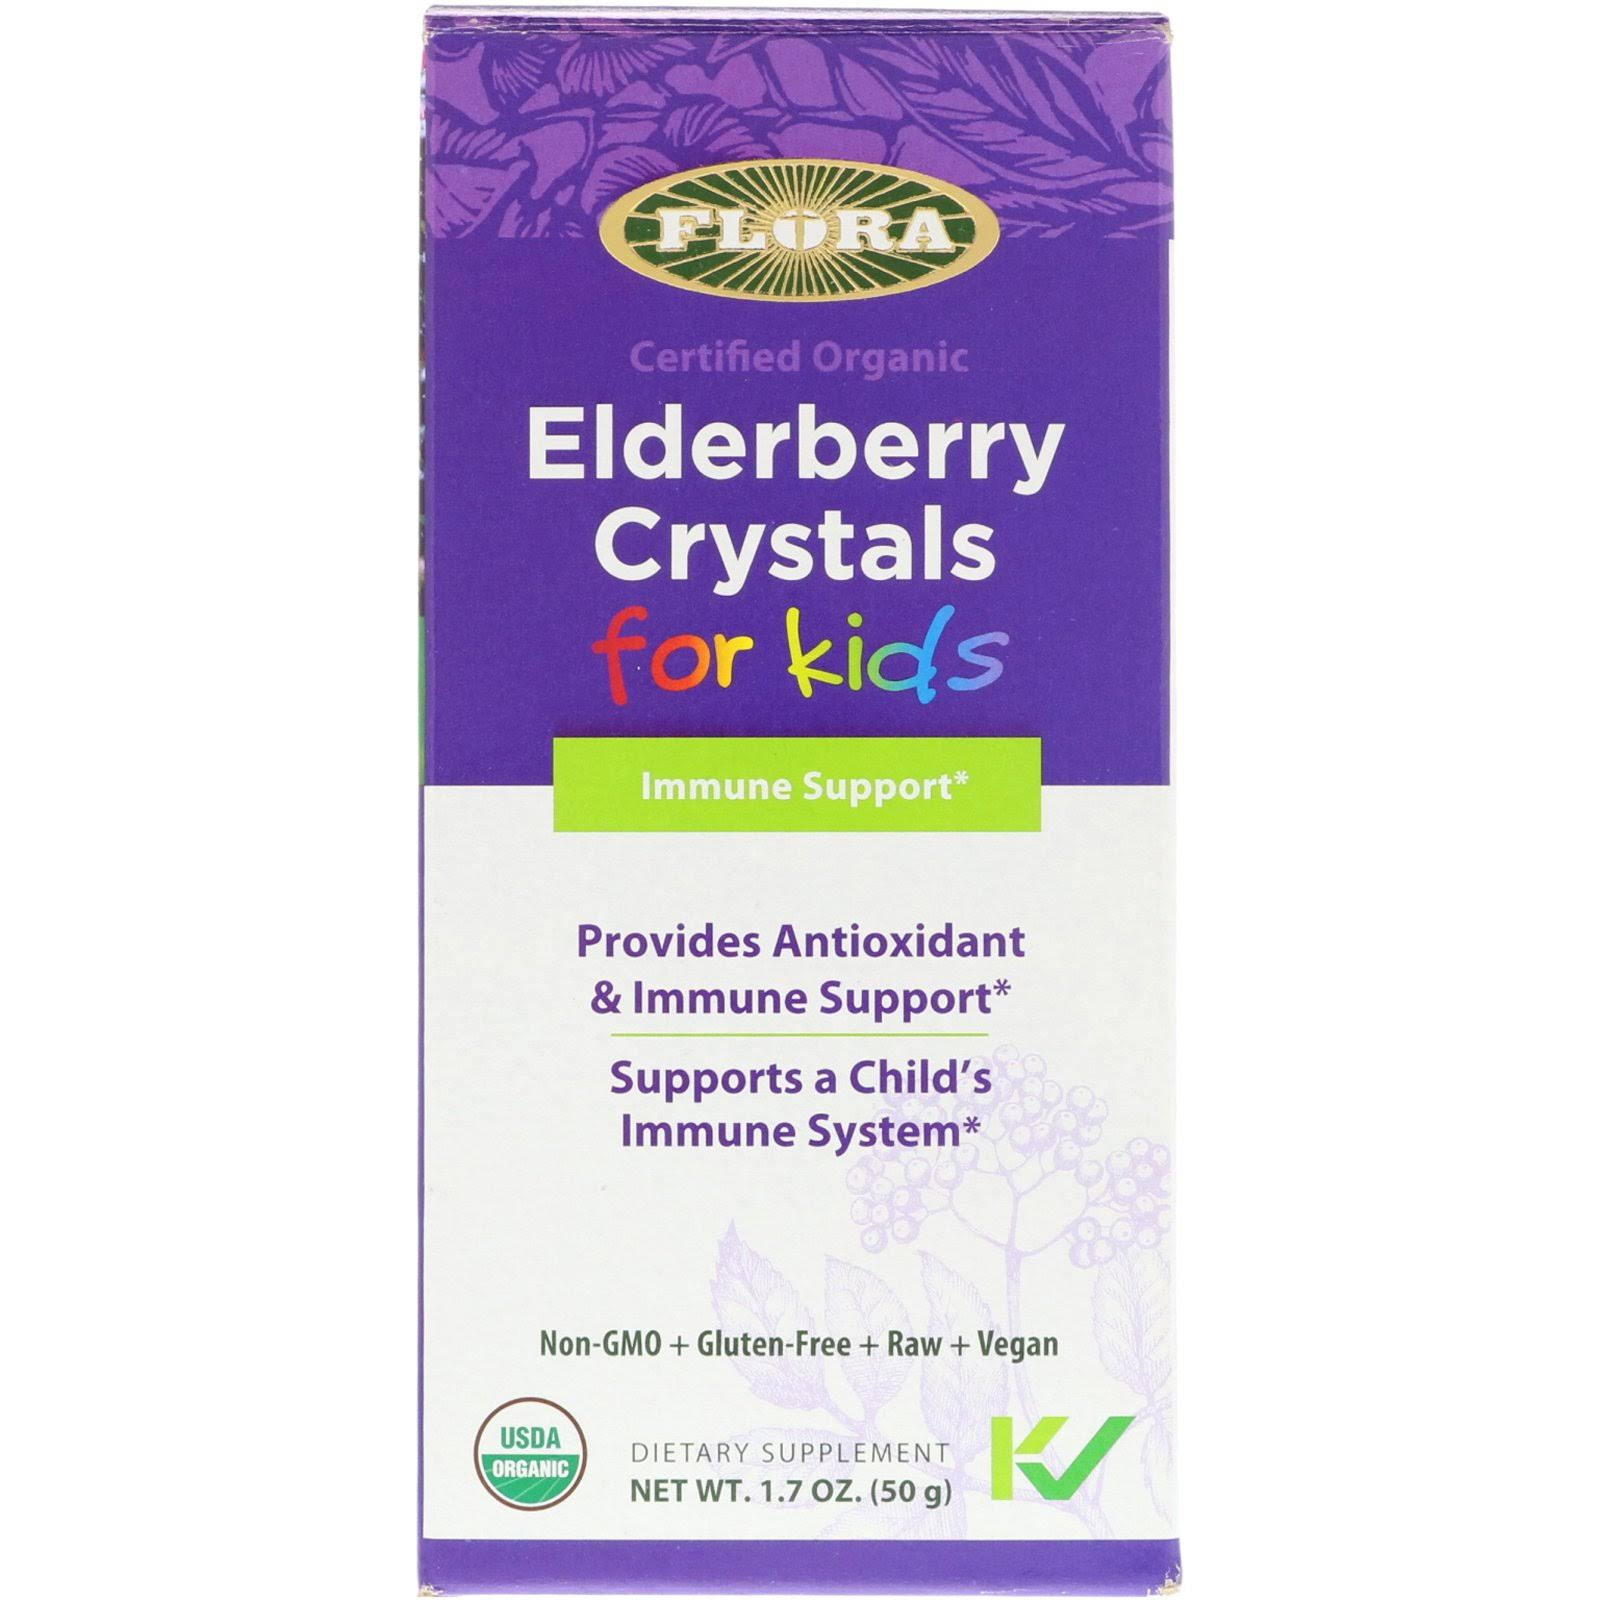 Flora Elderberry Crystals For Kids - 50g